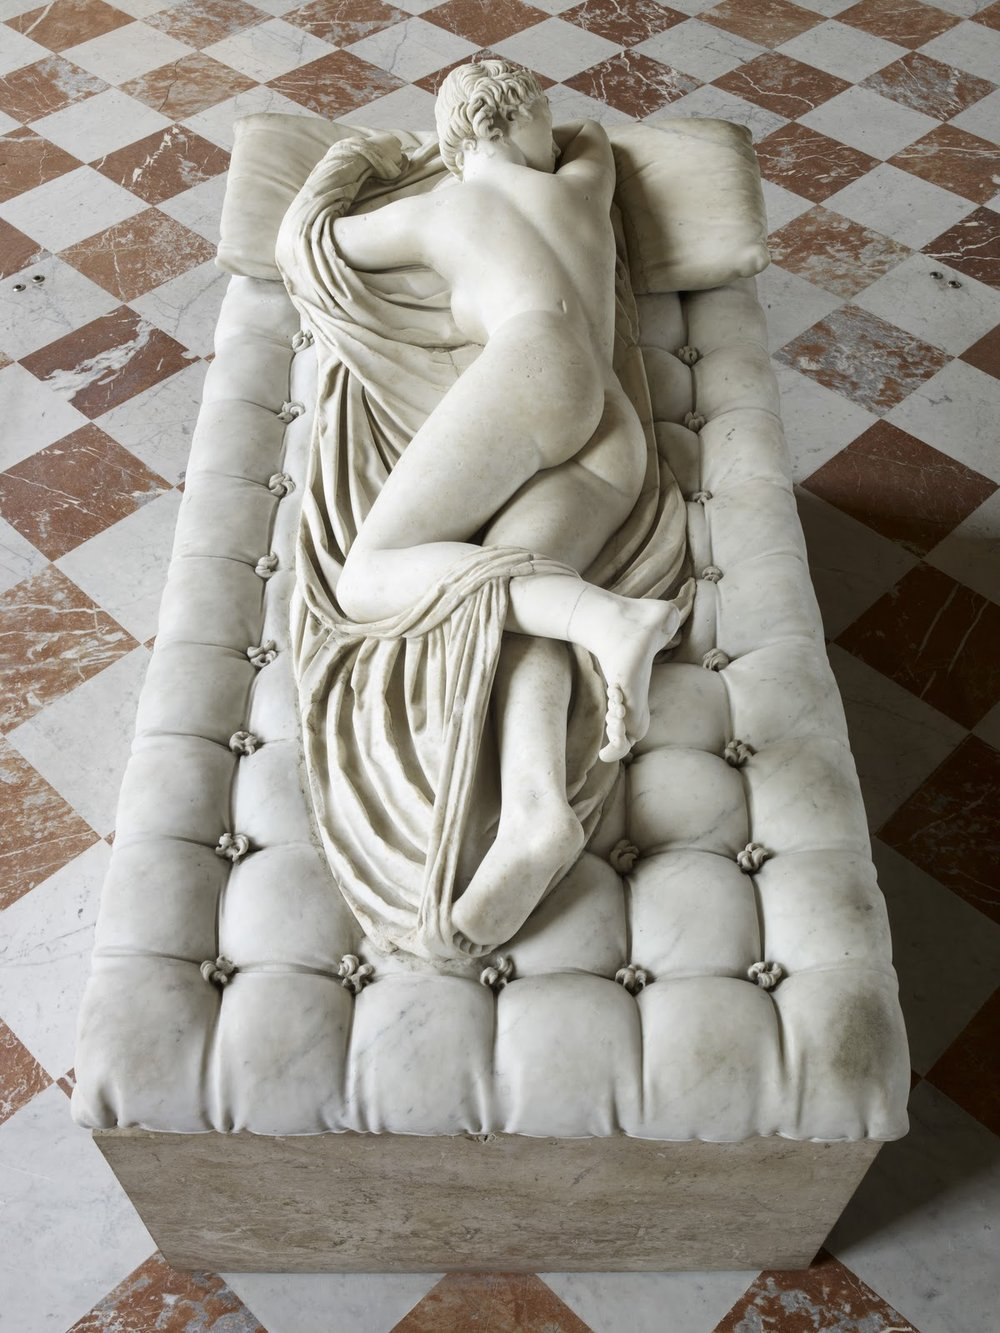 Sleeping Hermaphrodite. First half of 2nd century AD. Restored by Gian Lorenzo Bernini and David Larique. Louvre Museum, Paris. © Musée du Louvre, Thierry Ollivier